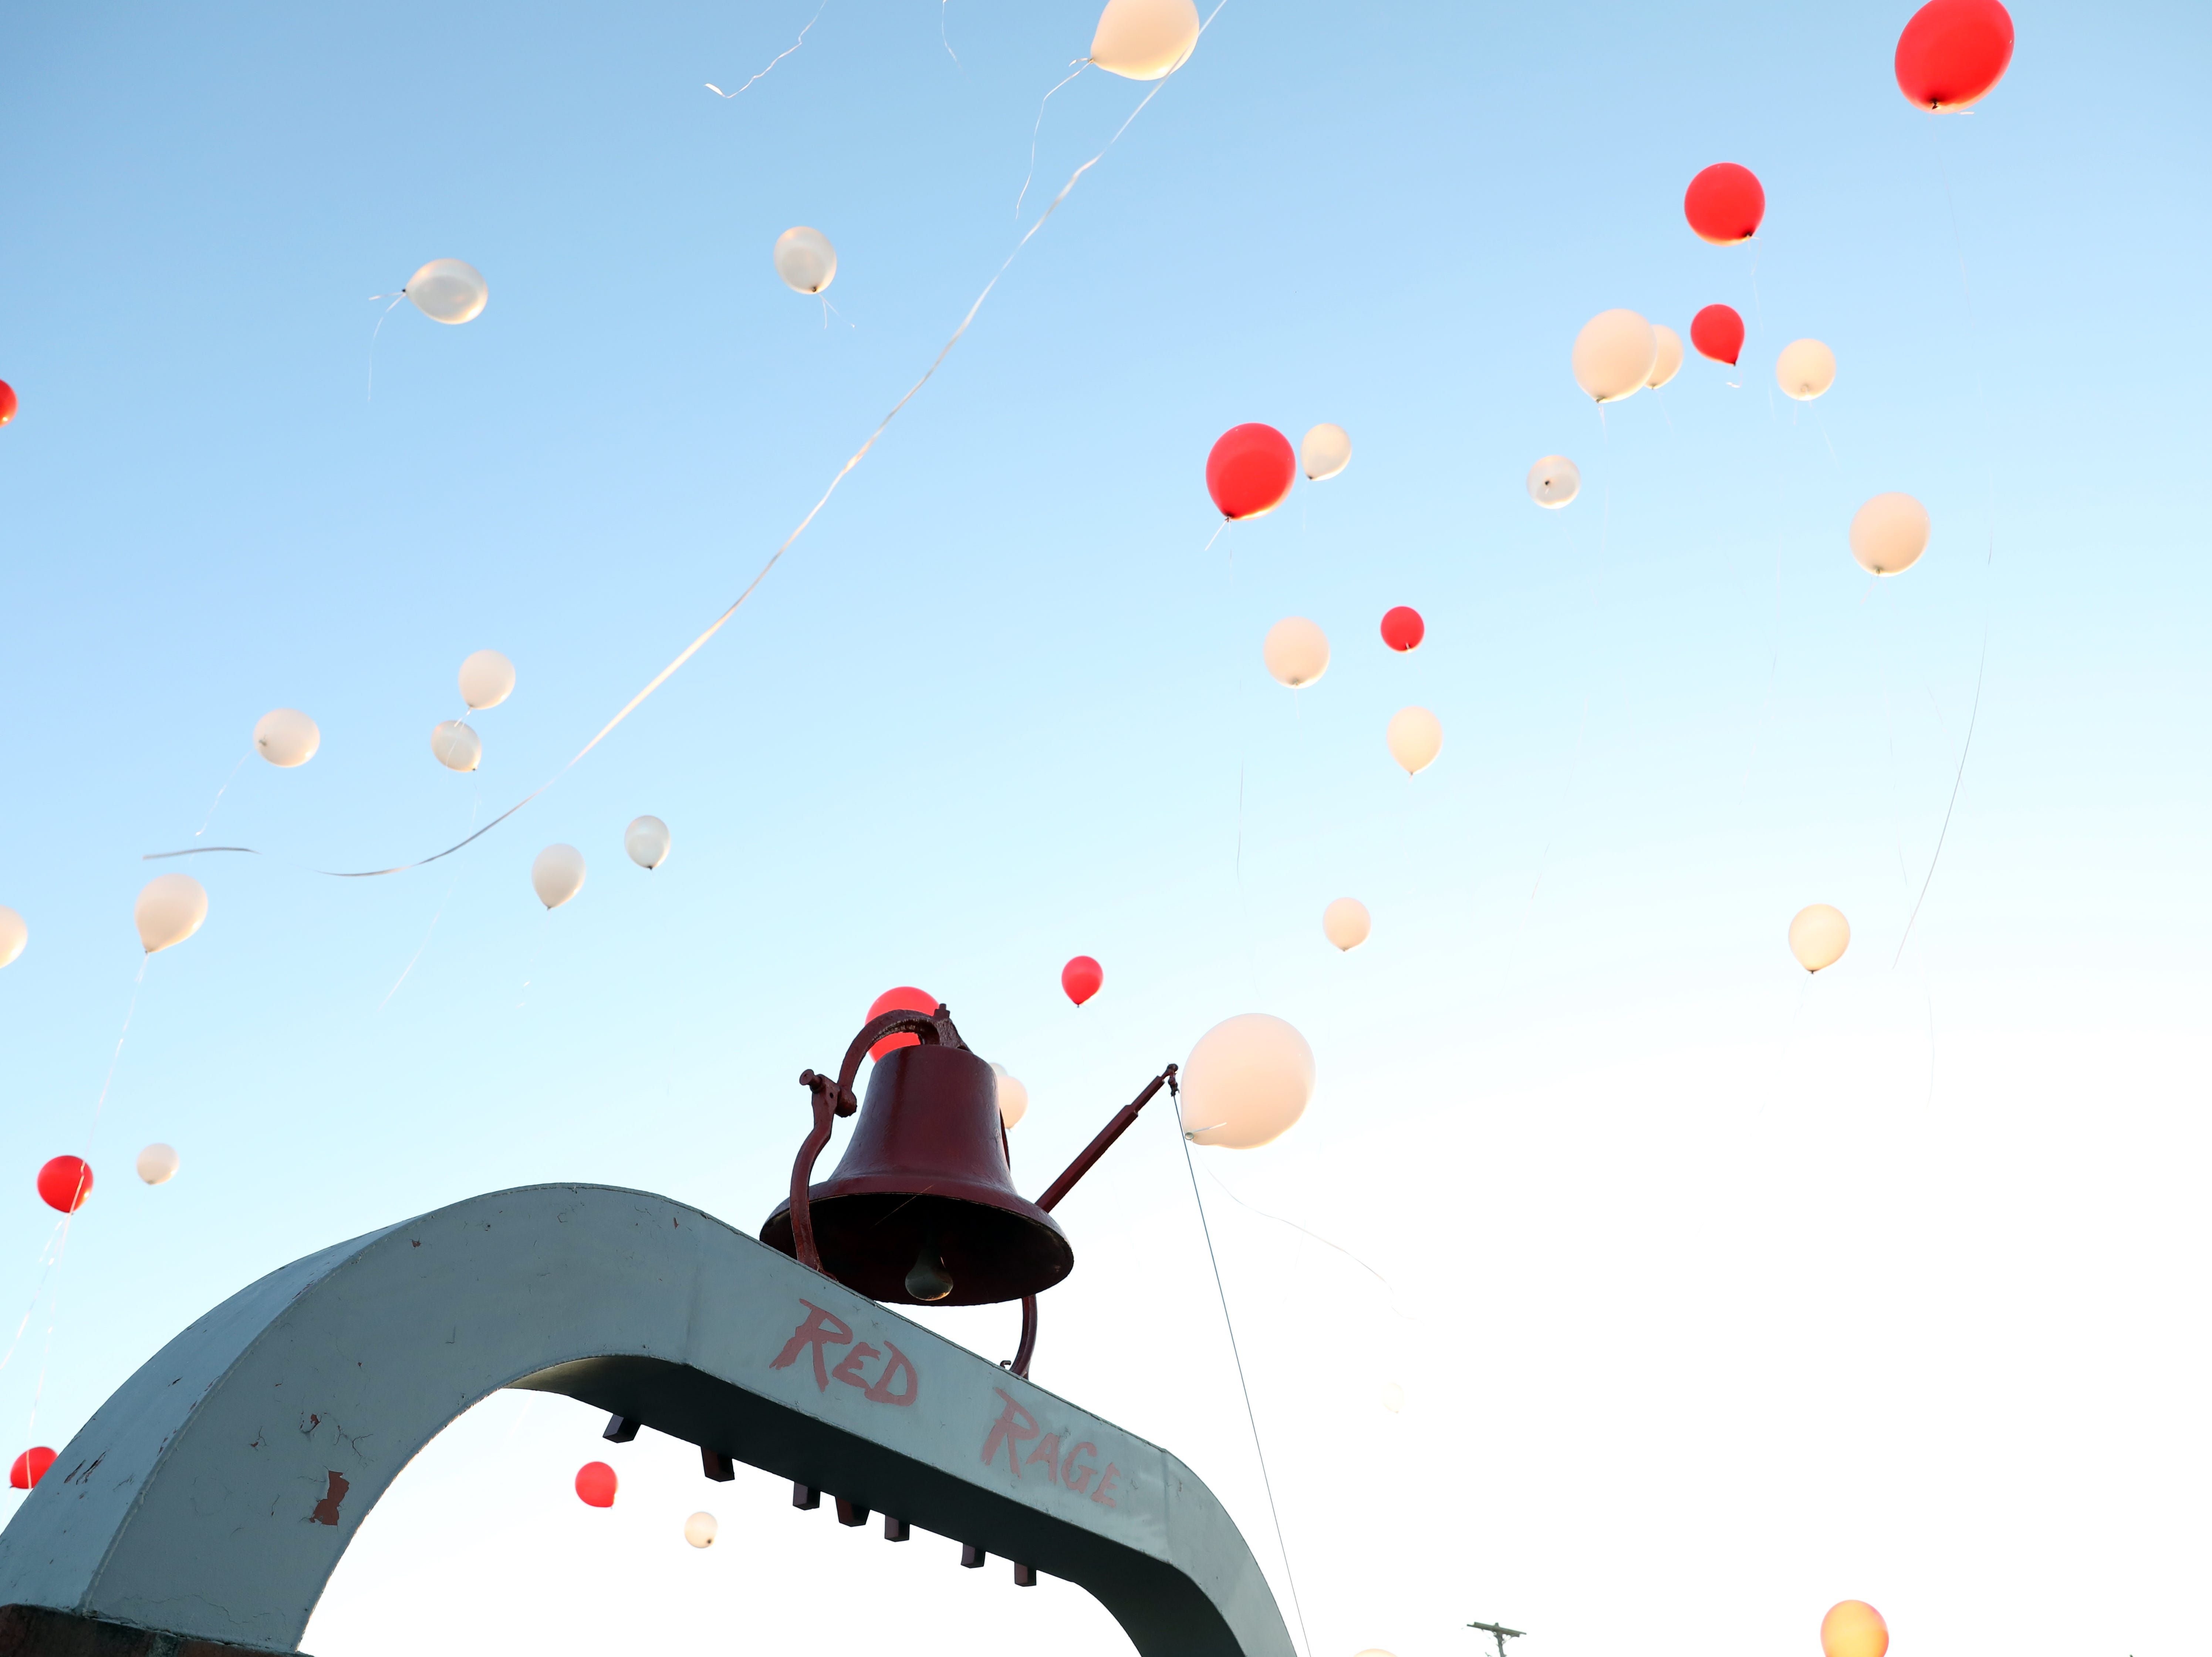 Balloons soar into the sky for Sheridan High School's homecoming on Friday.